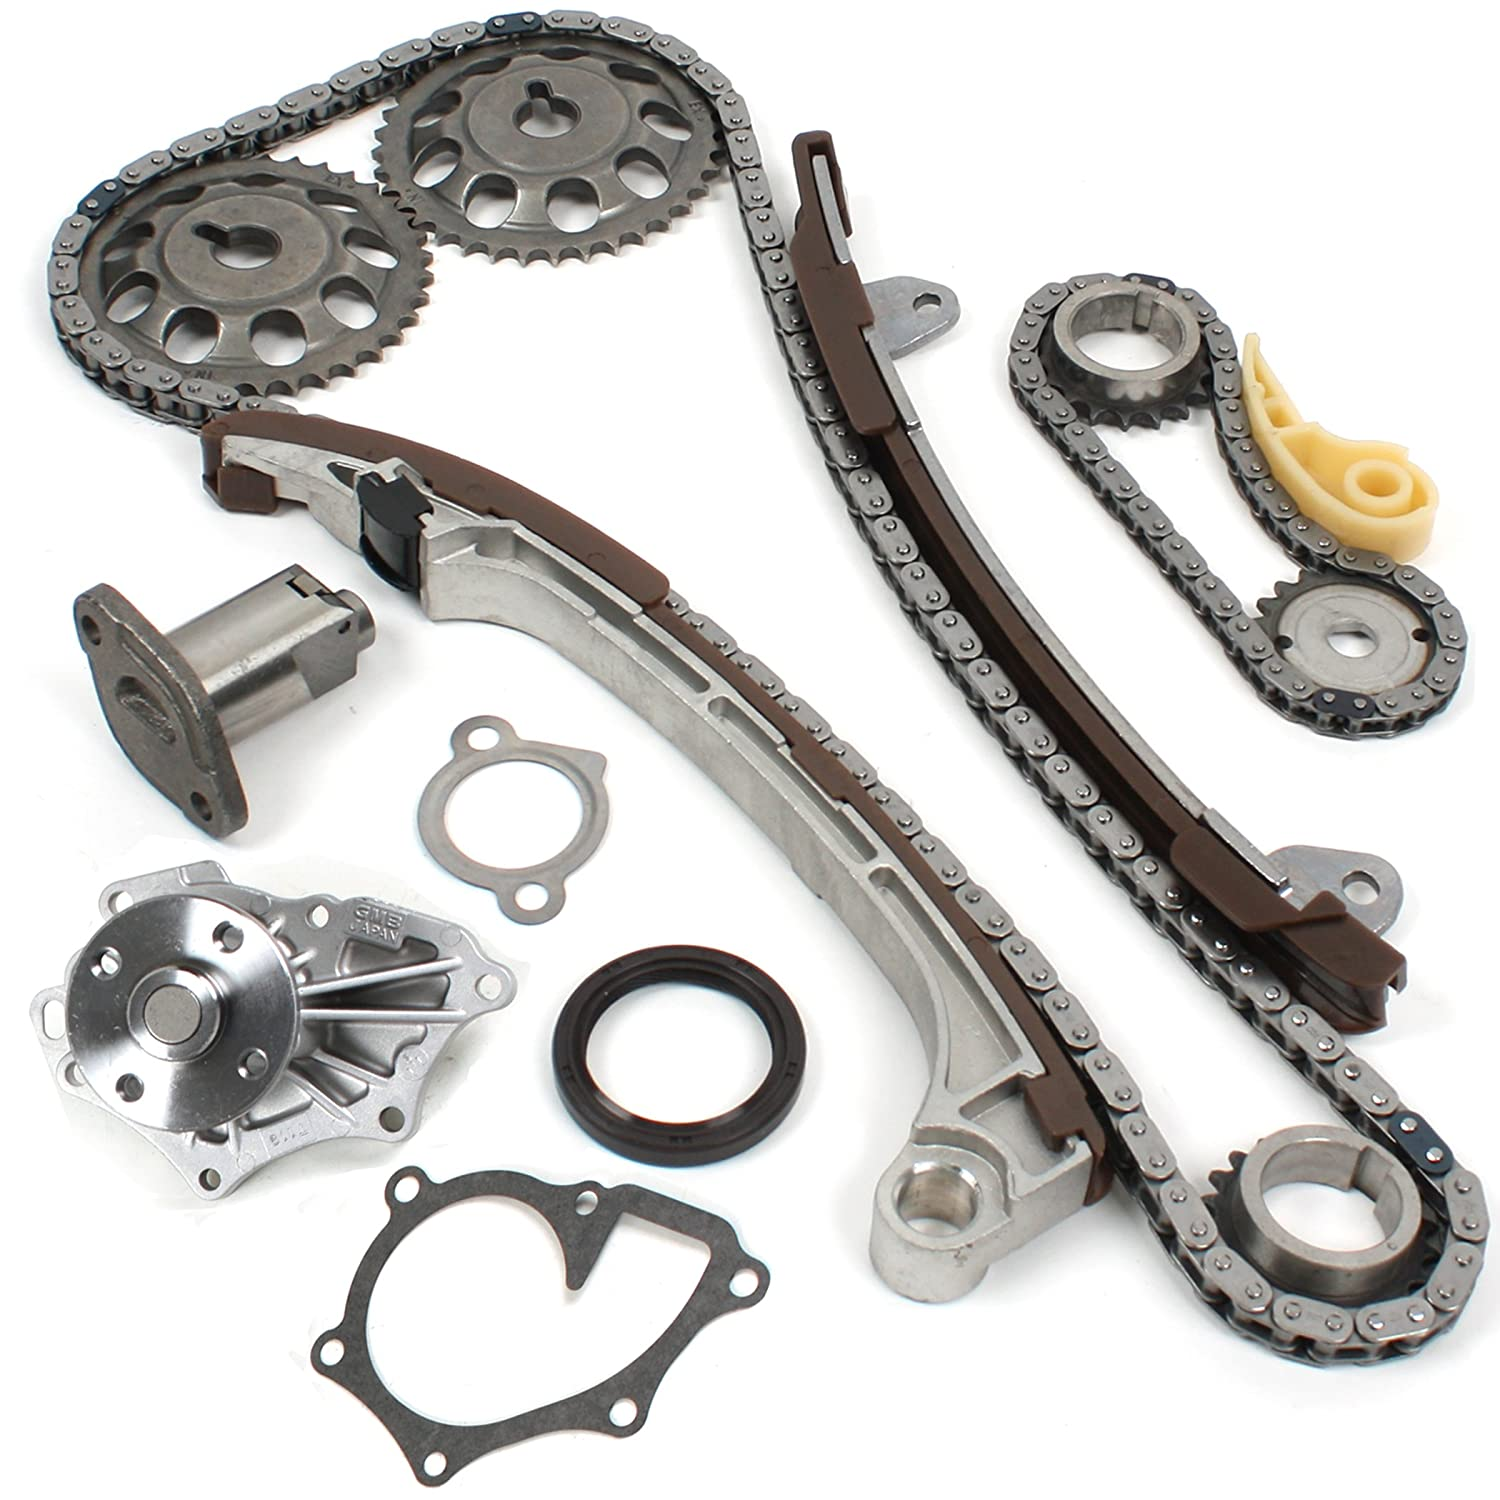 CNS TK1080WP Brand New OE Replacement Timing Chain Kit and Water Pump Set for VVT-i '2AZFE' '2AZ-FE' '1AZFE' '1AZ-FE' Engine CNS EngineParts